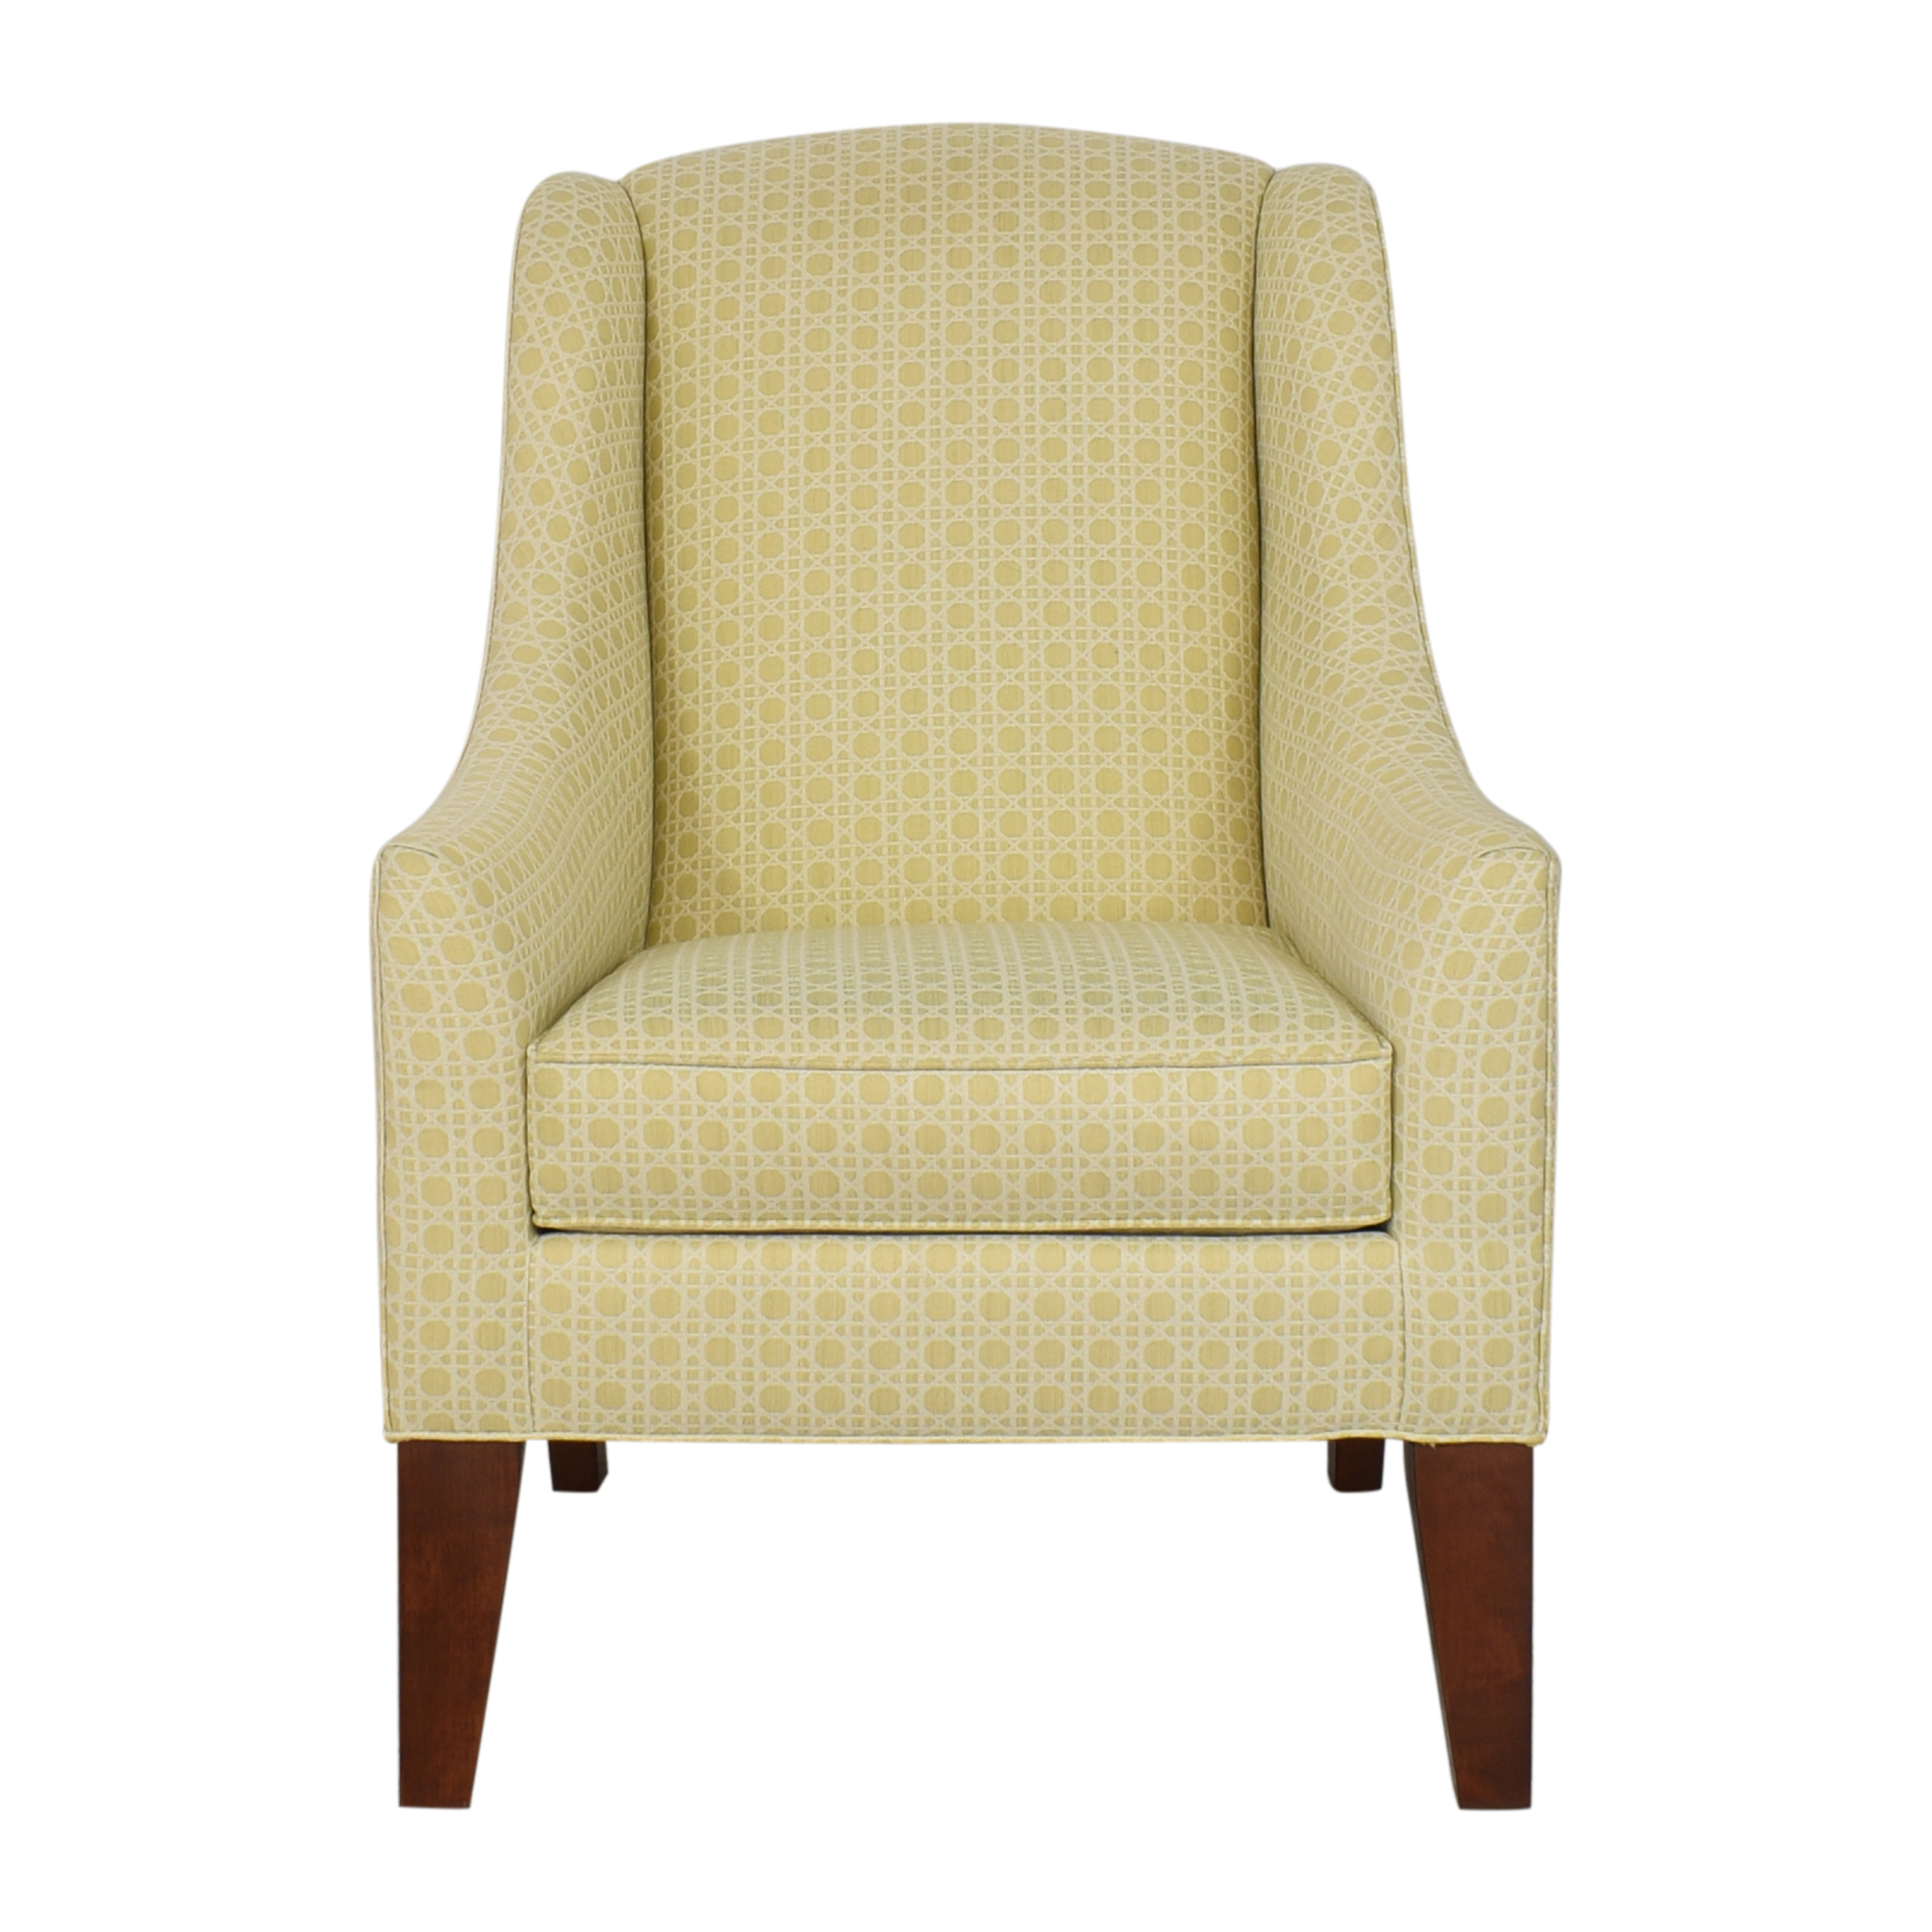 Ethan Allen Ethan Allen Hartwell Chair used